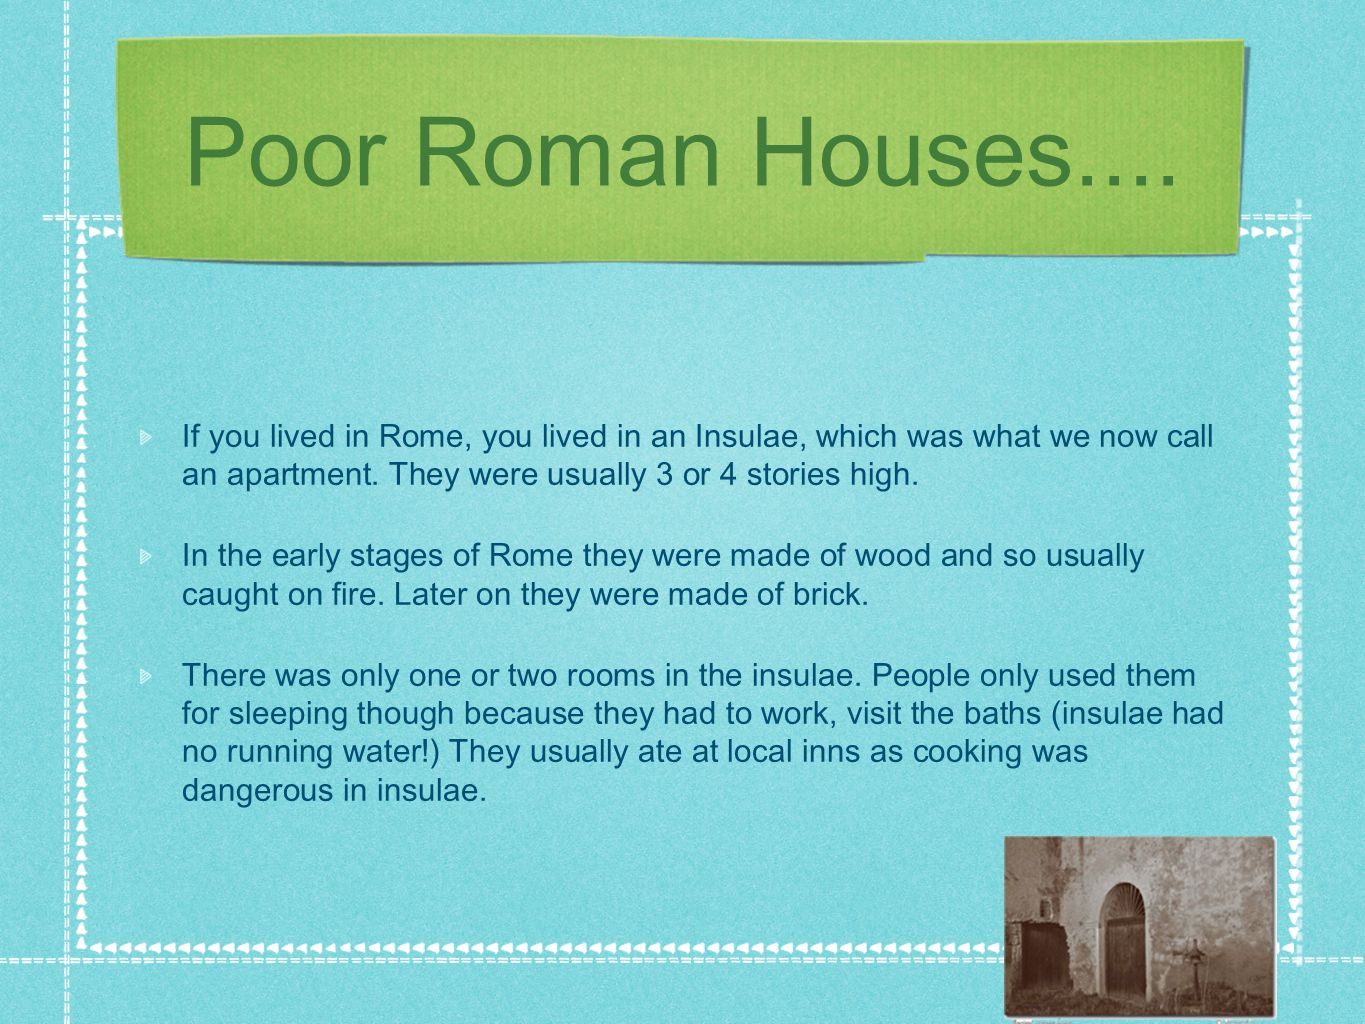 Poor Roman Houses.... If you lived in Rome, you lived in an Insulae, which was what we now call an apartment. They were usually 3 or 4 stories high.